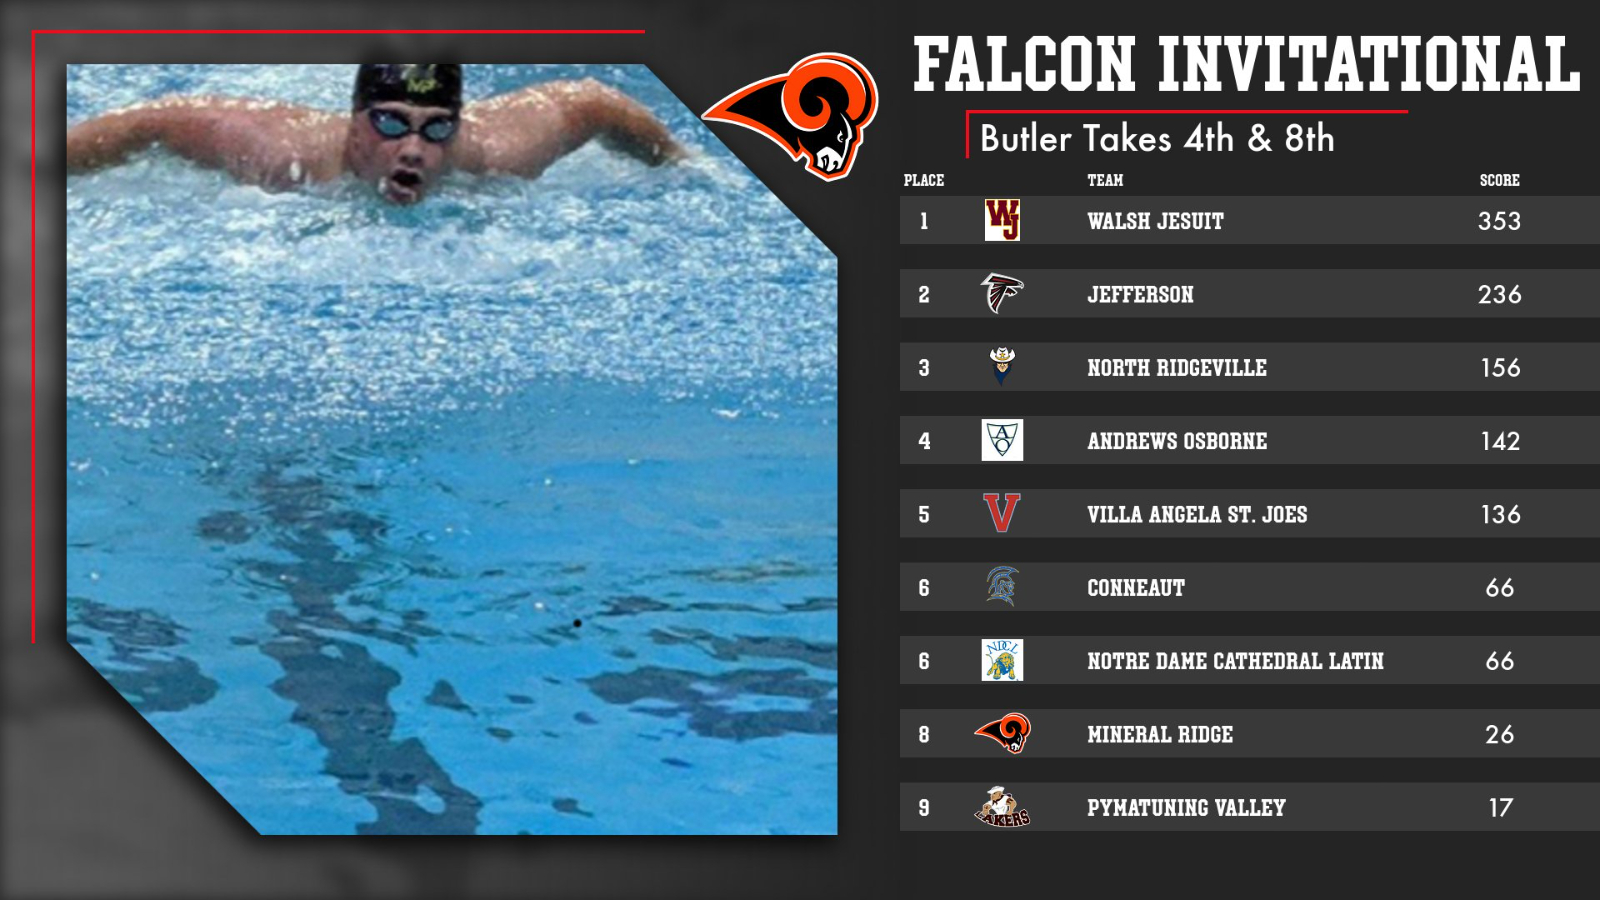 Clayton Butler Swims at The Falcon Invitational